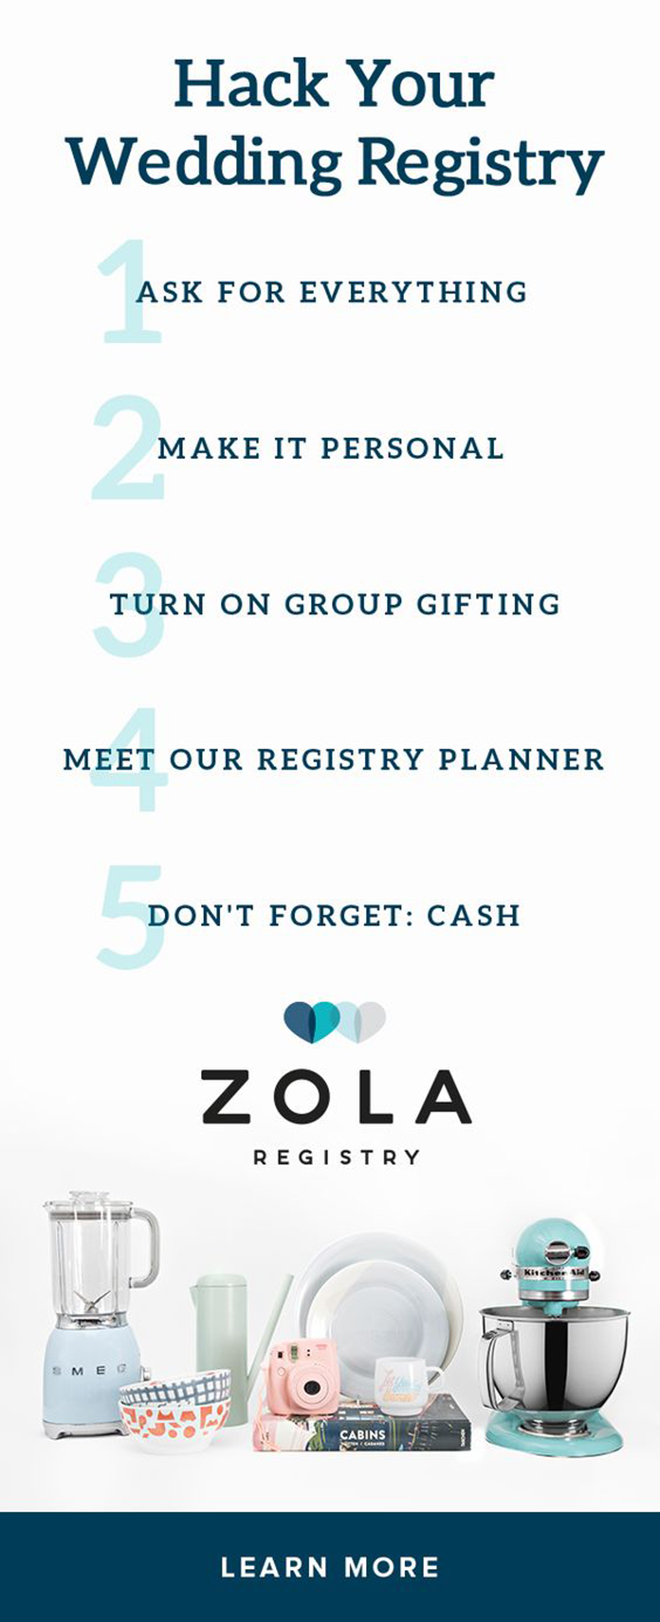 Start your wedding registry with Zola today!